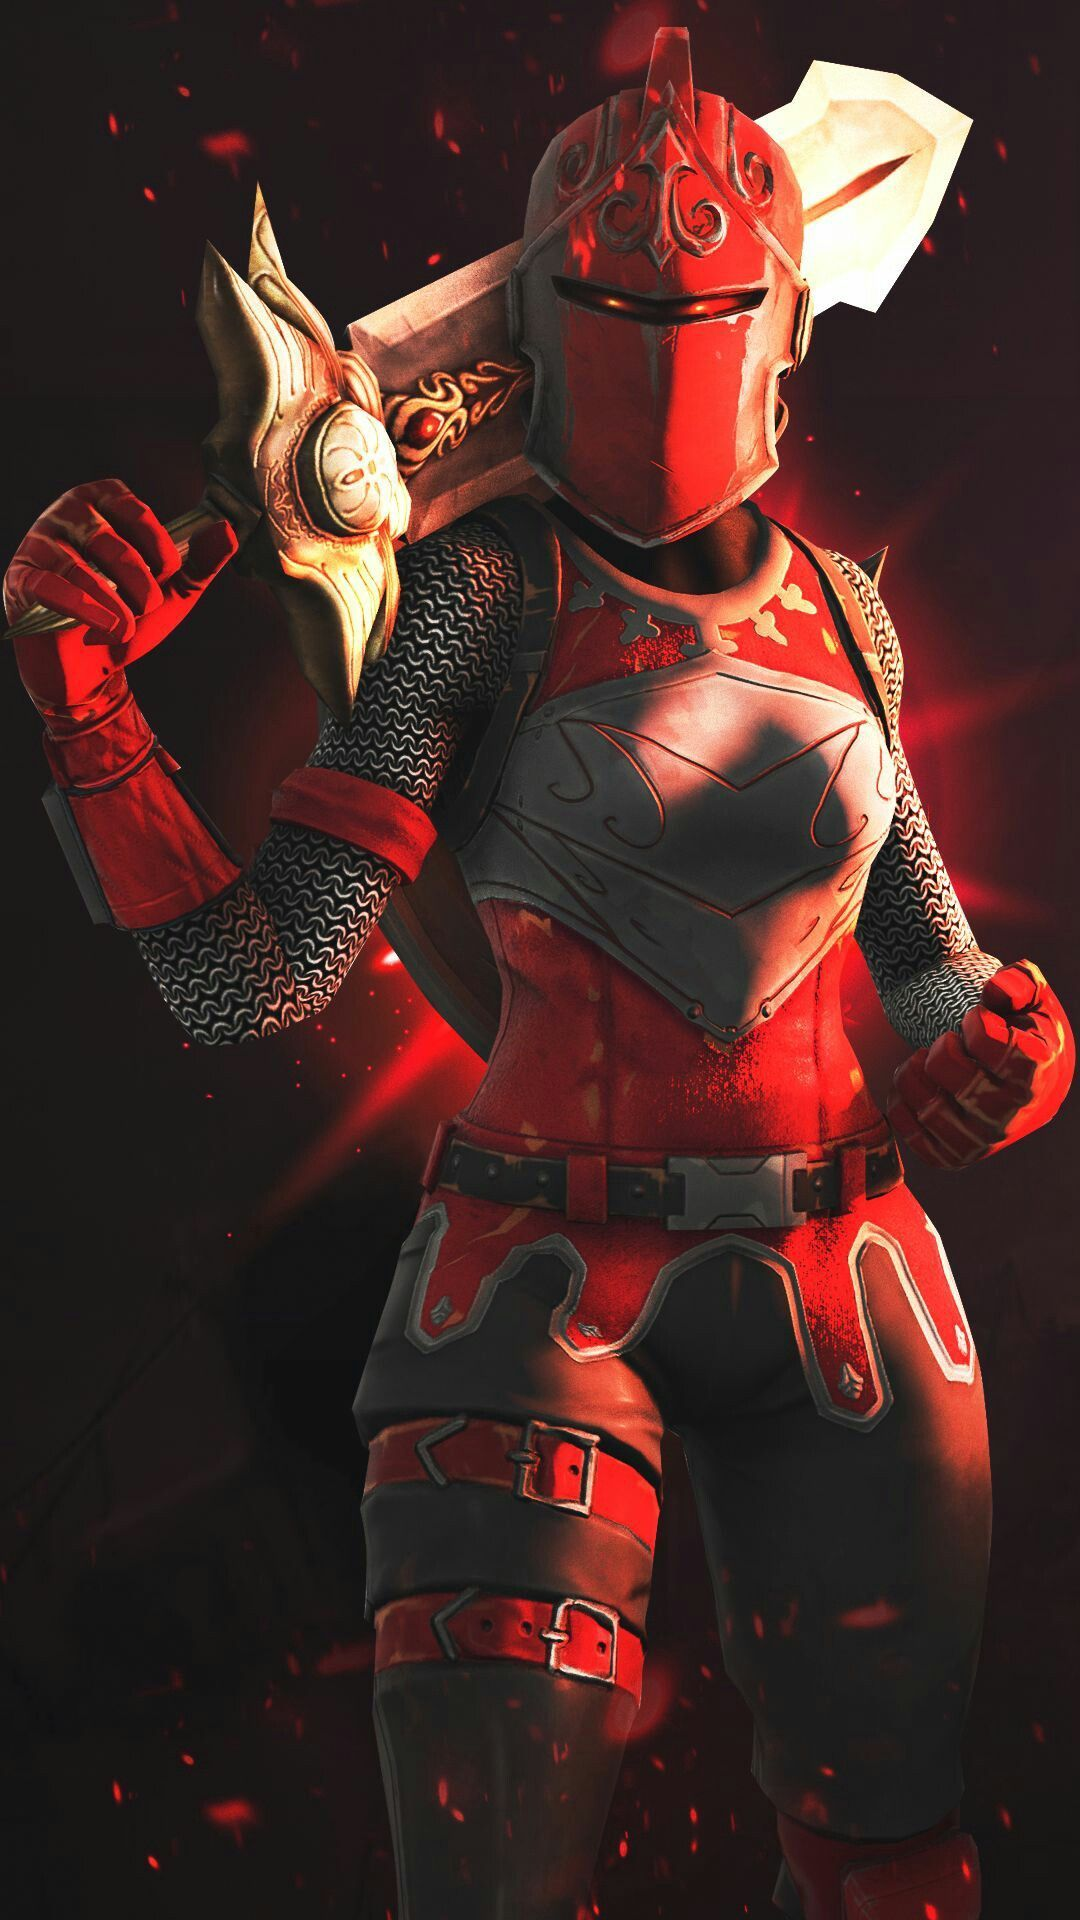 Fortnite Wallpaper Red Knight 1080x1920 Wallpaper Teahub Io